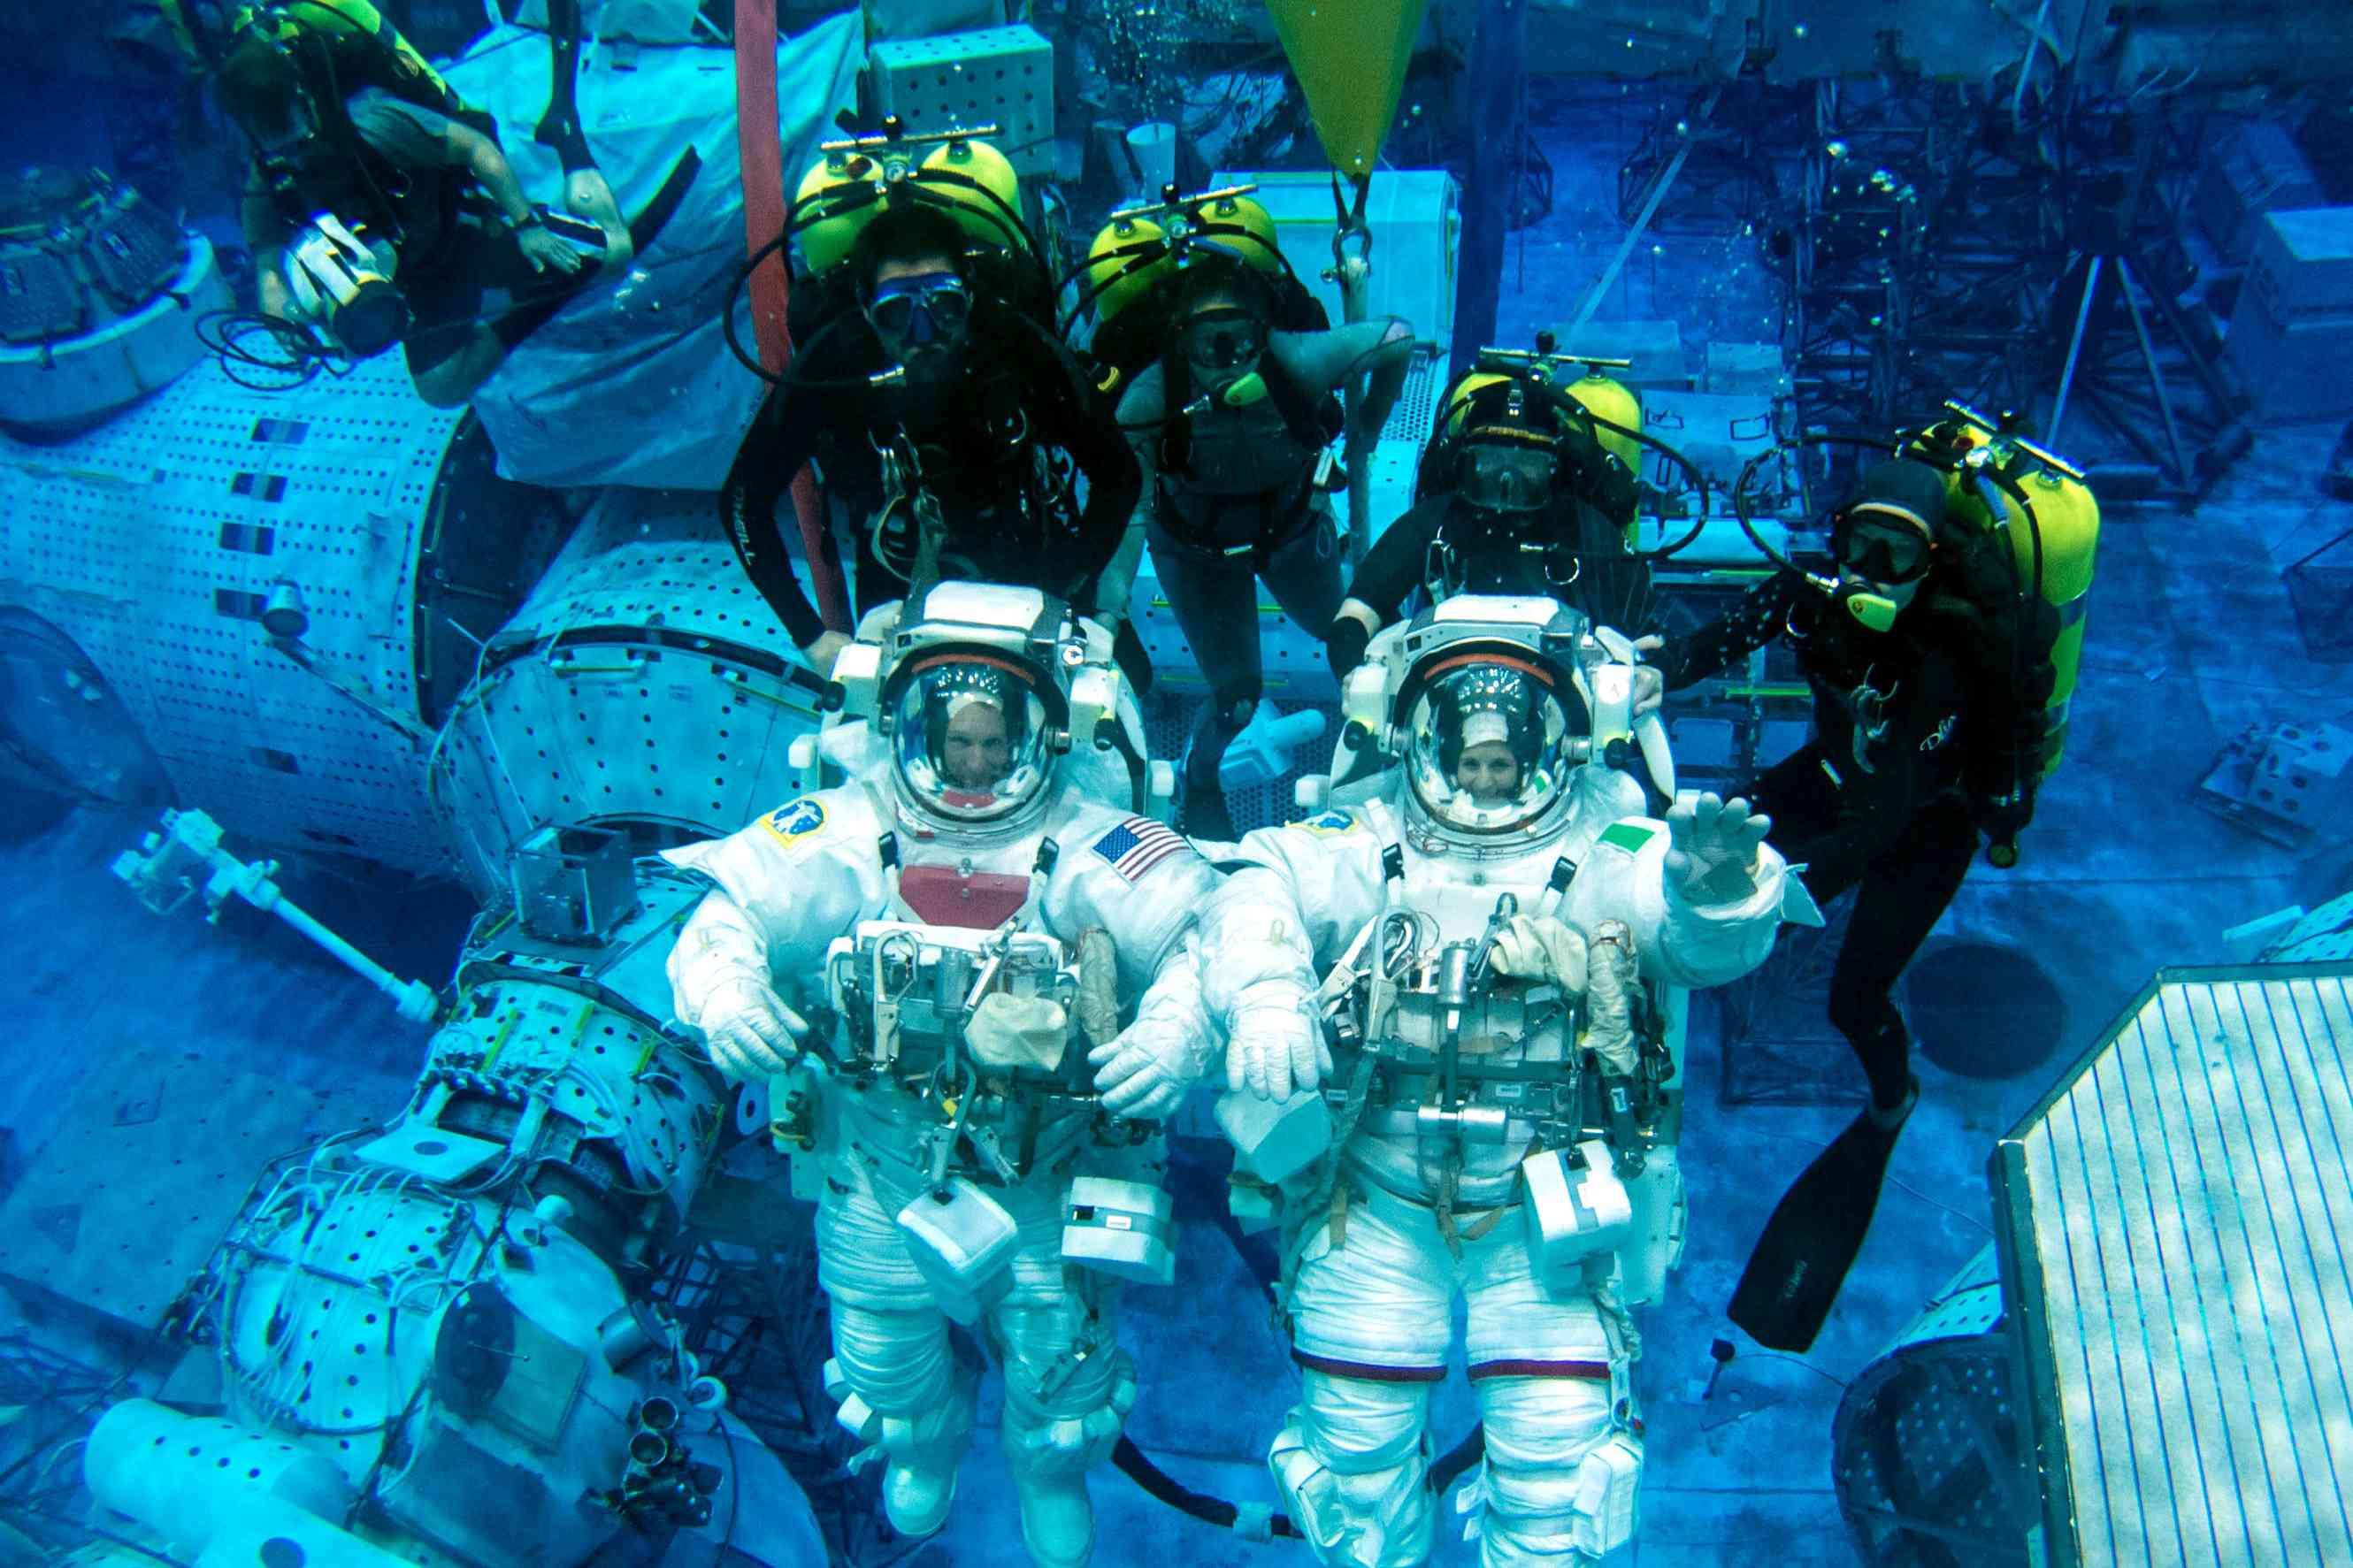 Astronauts train extensively underwater on Earth, wearing pressure suits, to simulate working in space